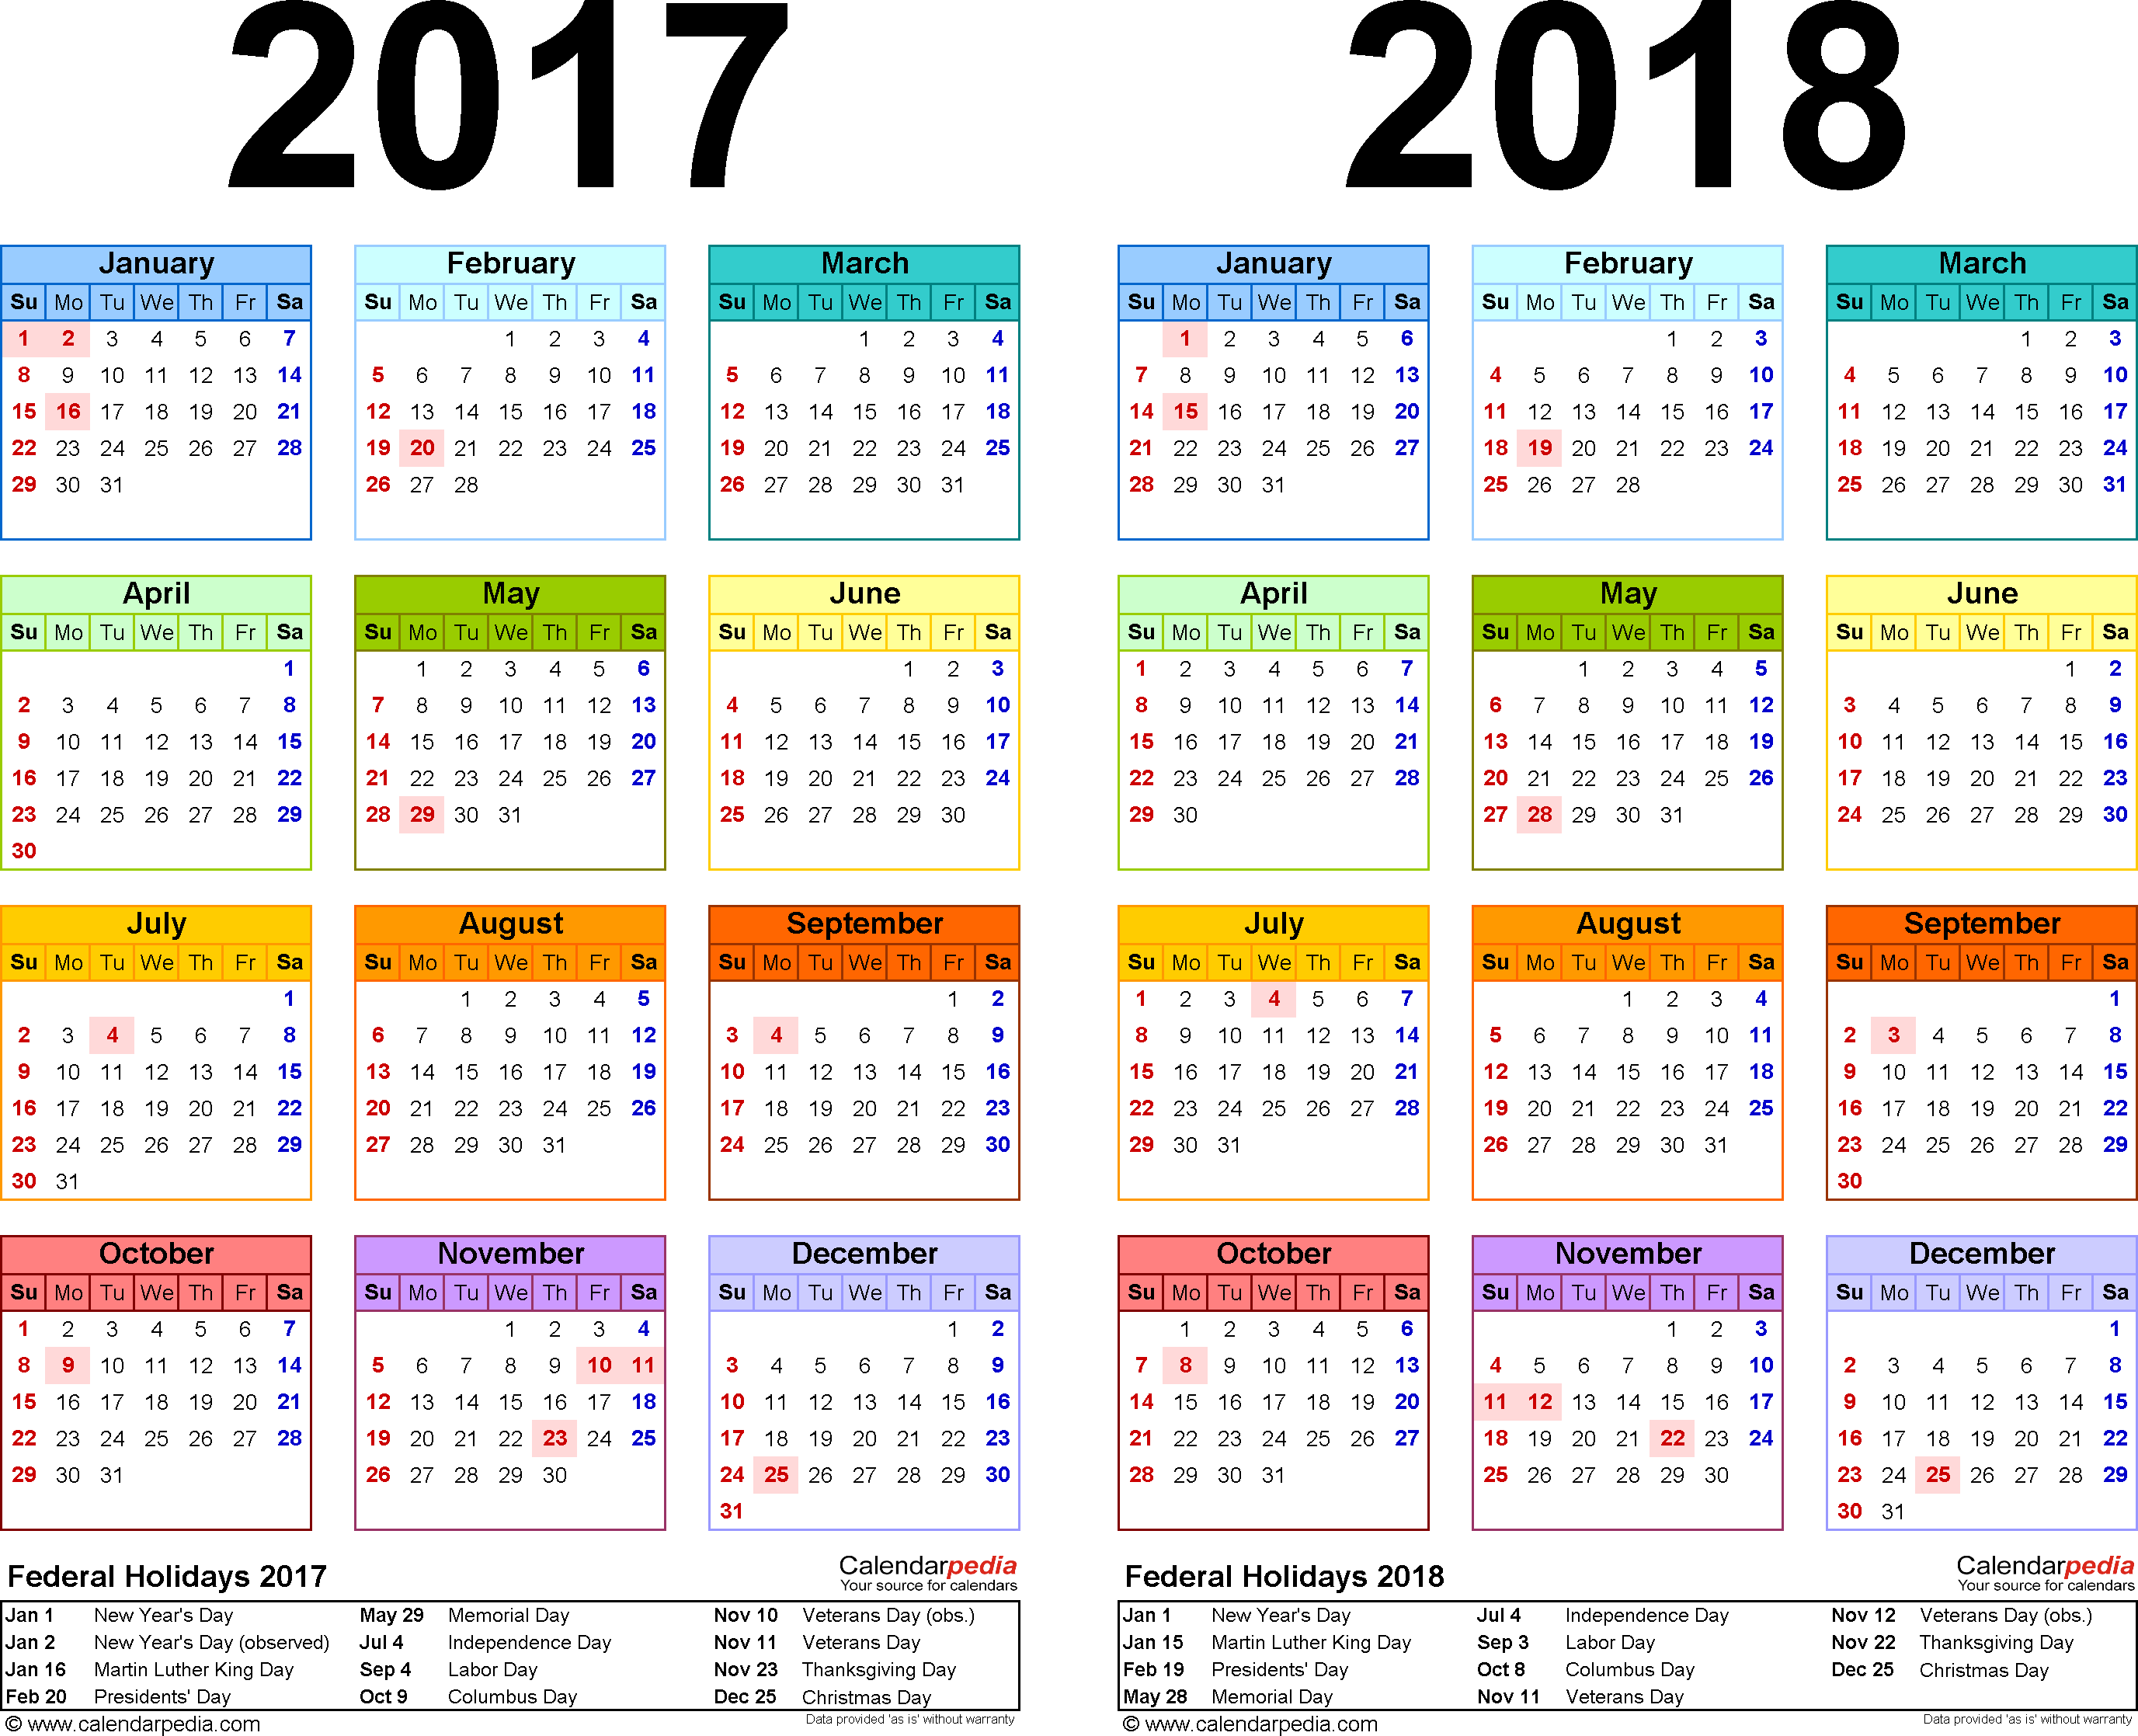 2017-2018 Calendar - free printable two-year PDF calendars